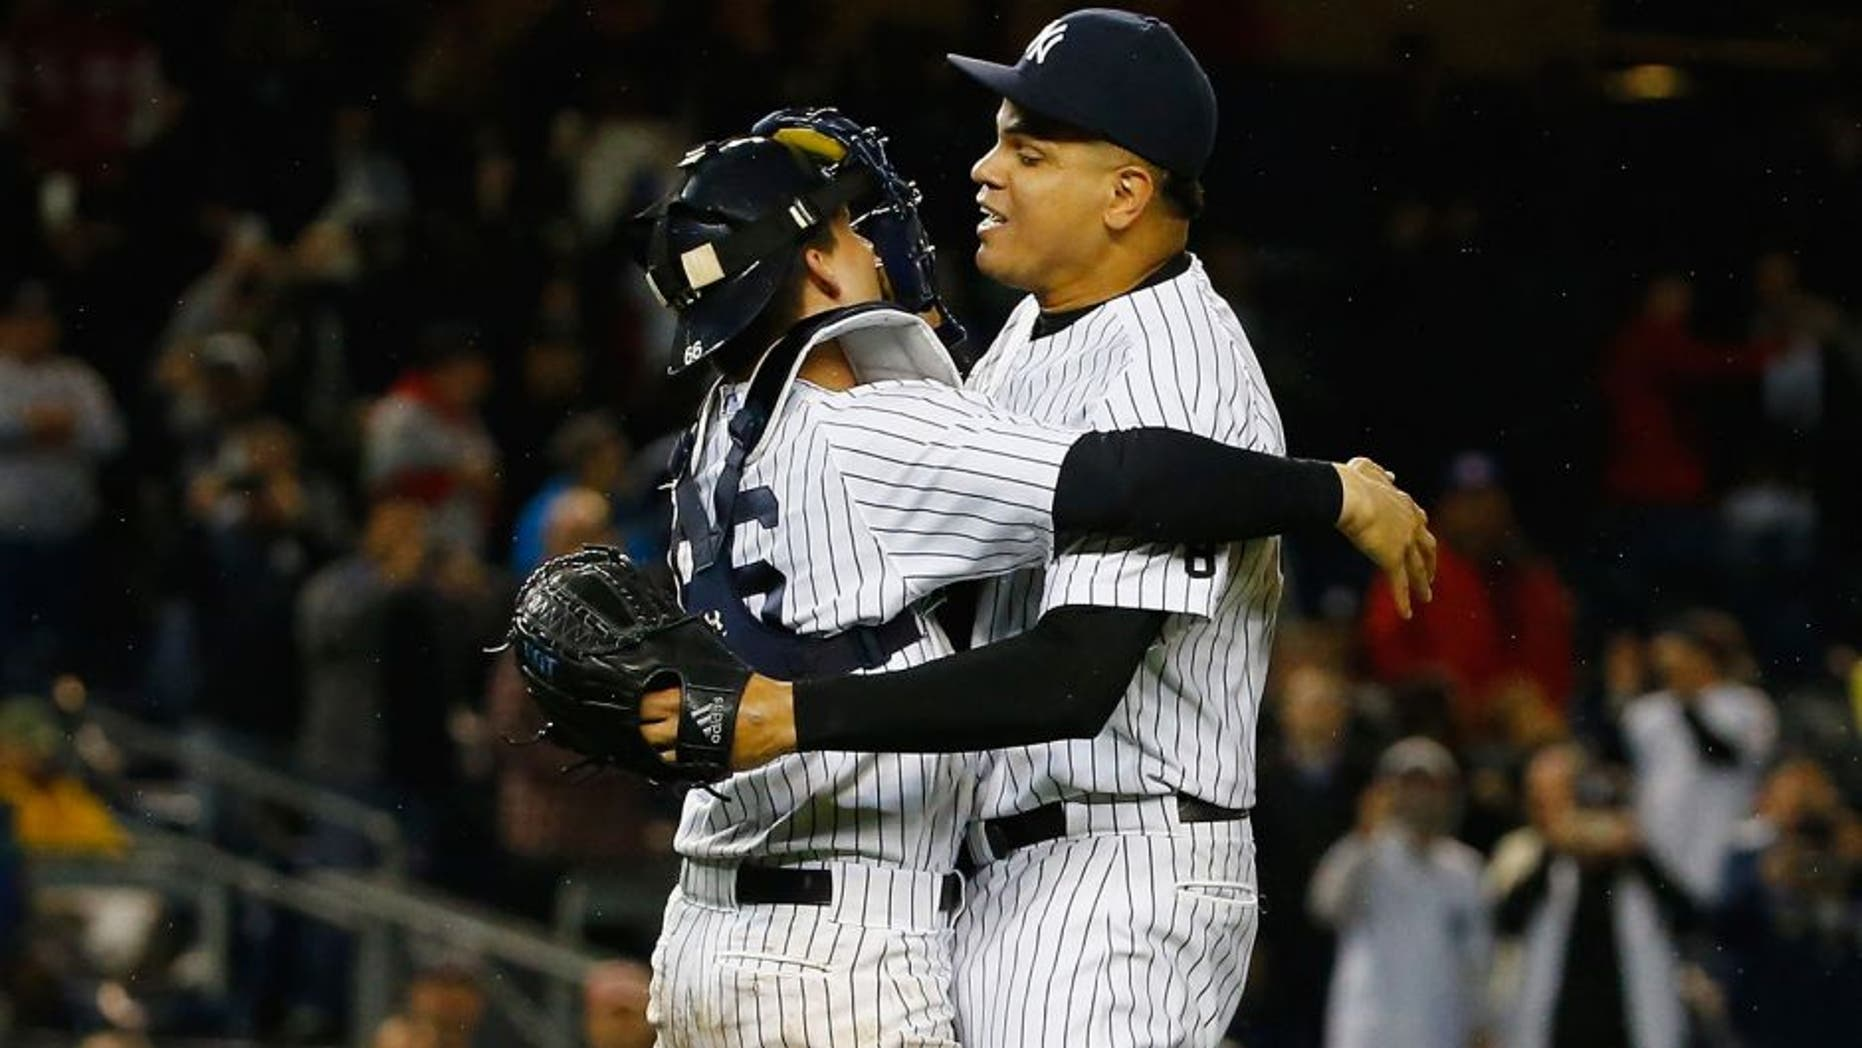 NEW YORK, NY - OCTOBER 01: John Ryan Murphy #66 of the New York Yankees and Dellin Betances #68 celebrate the New York Yankees 10000th win and their wildcard clinching berth to the playoffs against the Boston Red Sox after their game at Yankee Stadium on October 1, 2015 in New York City. (Photo by Al Bello/Getty Images)